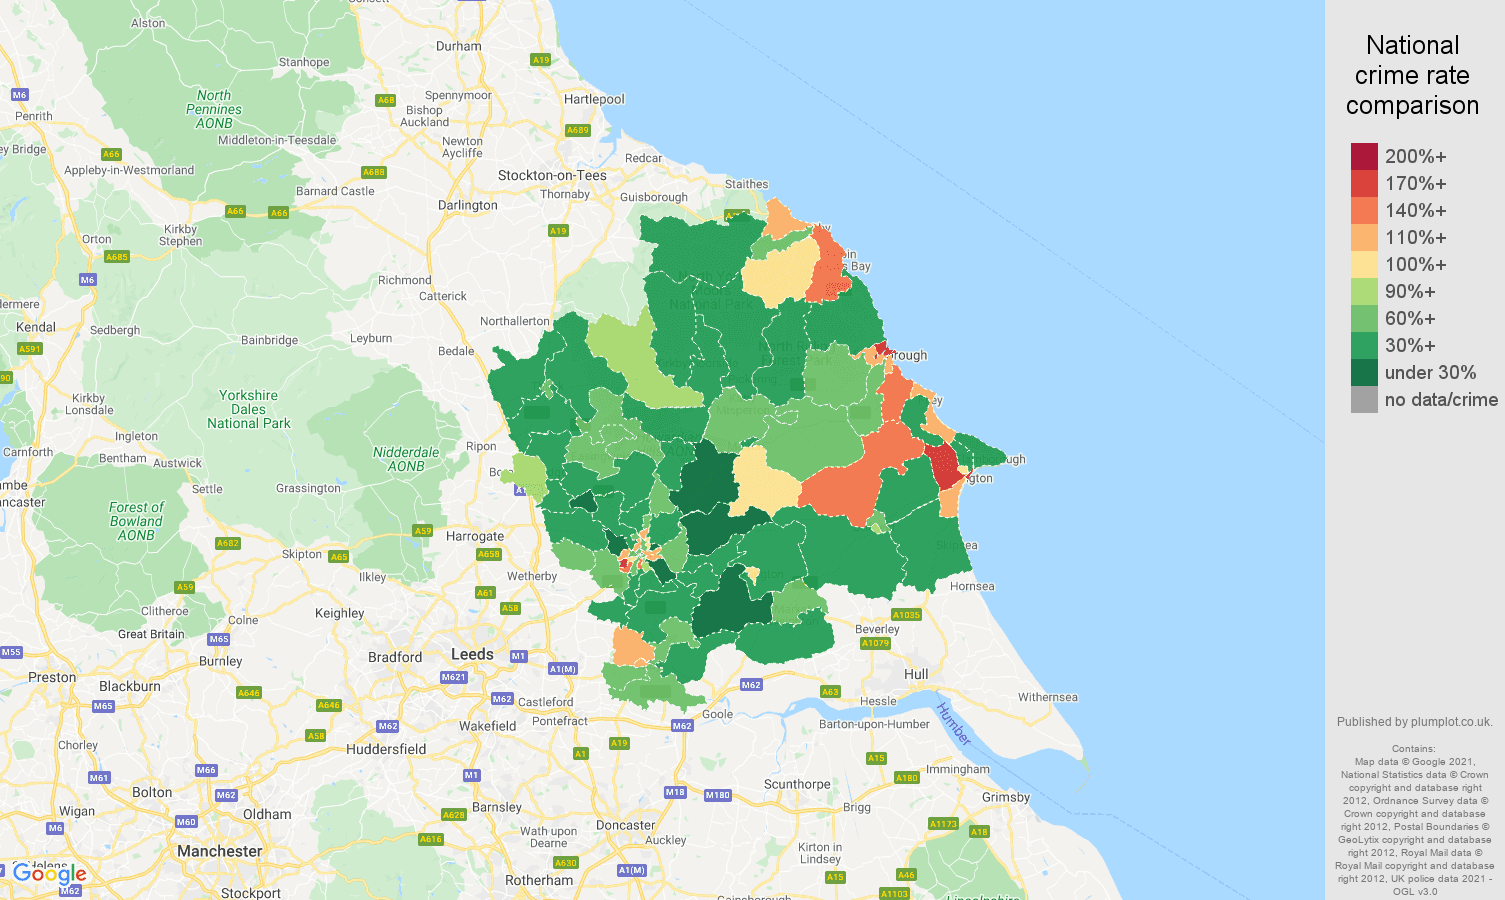 York criminal damage and arson crime rate comparison map